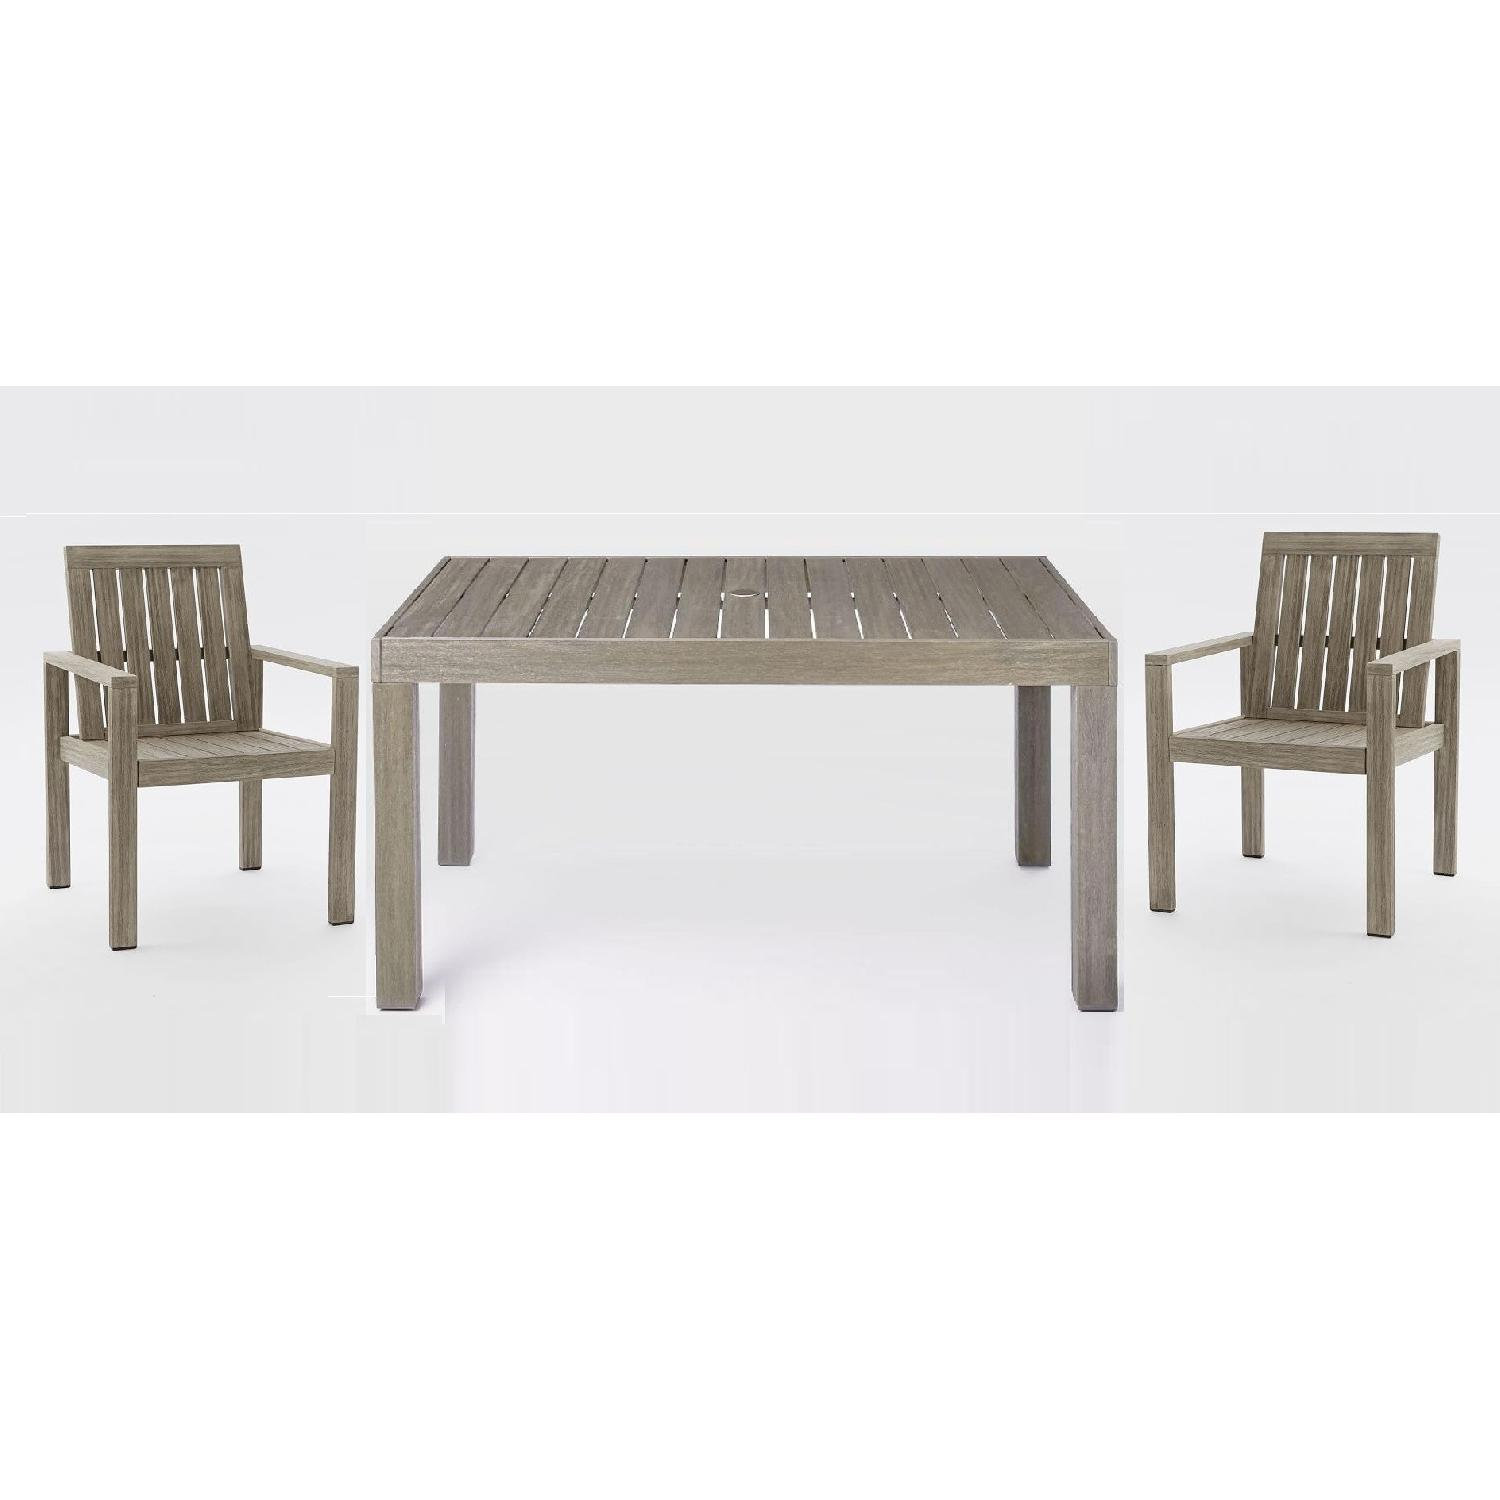 west elm patio furniture. West Elm Portside Outdoor/Patio Table W/ 2 Chairs Patio Furniture N